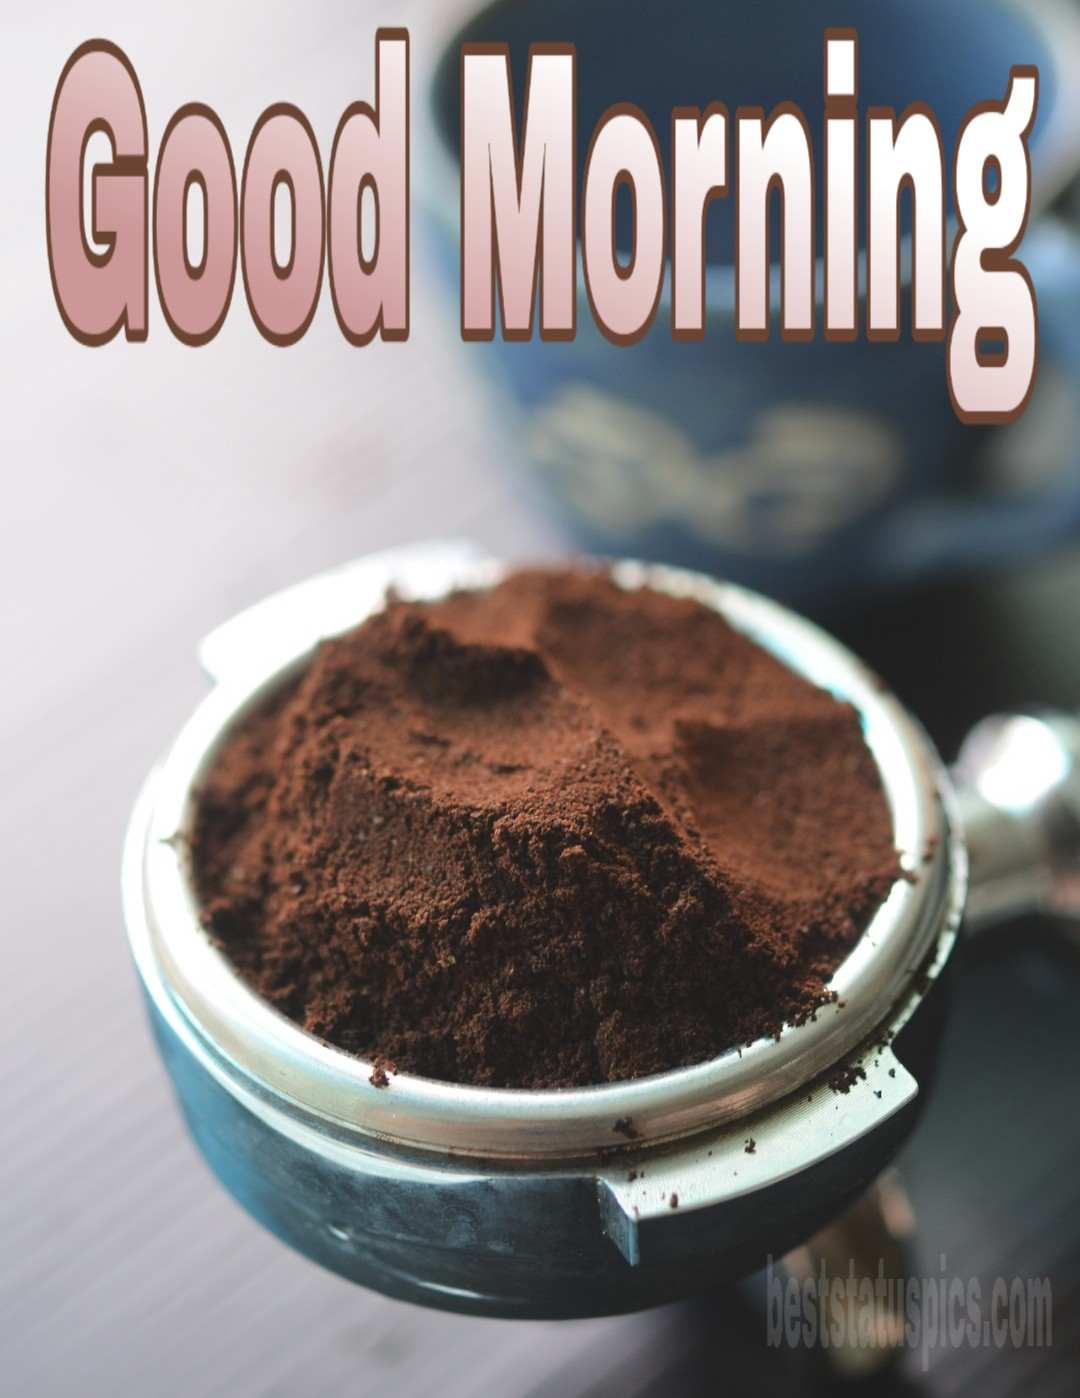 Good morning coffee power picture